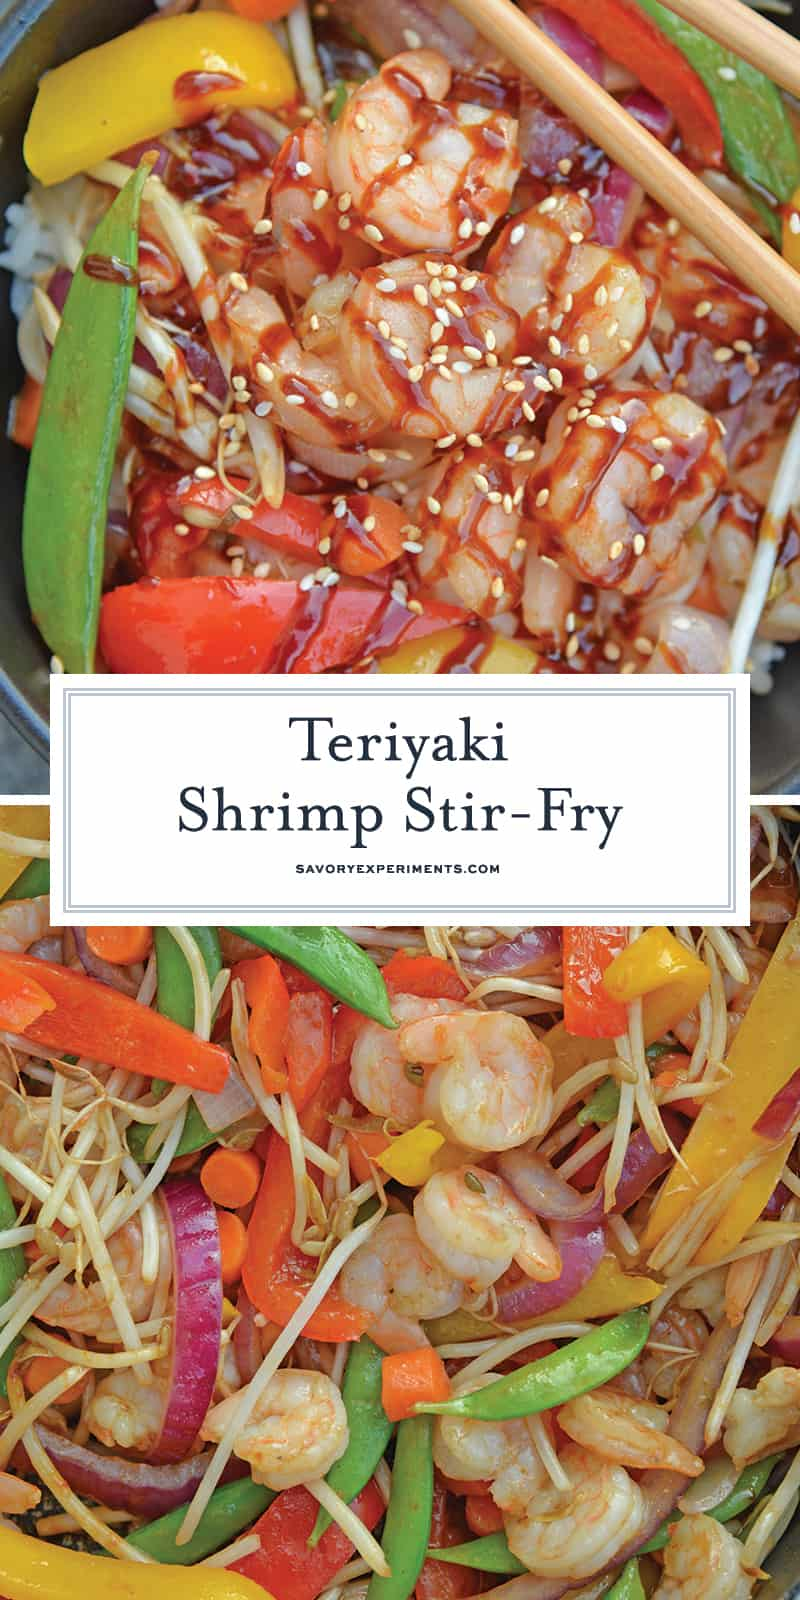 Skip the takeout and make this easy Teriyaki Shrimp Stir Fry instead! This Shrimp Stir Fry is an easy weeknight meal that the whole family will love! Best served with fried rice or noodles and packed full of veggies, this healthy recipe is sure to be a hit! #shrimpstirfry #teriyakirecipes #recipesthatuseteriyakisauce #teriyakishrimpstirfry #savoryexperiments